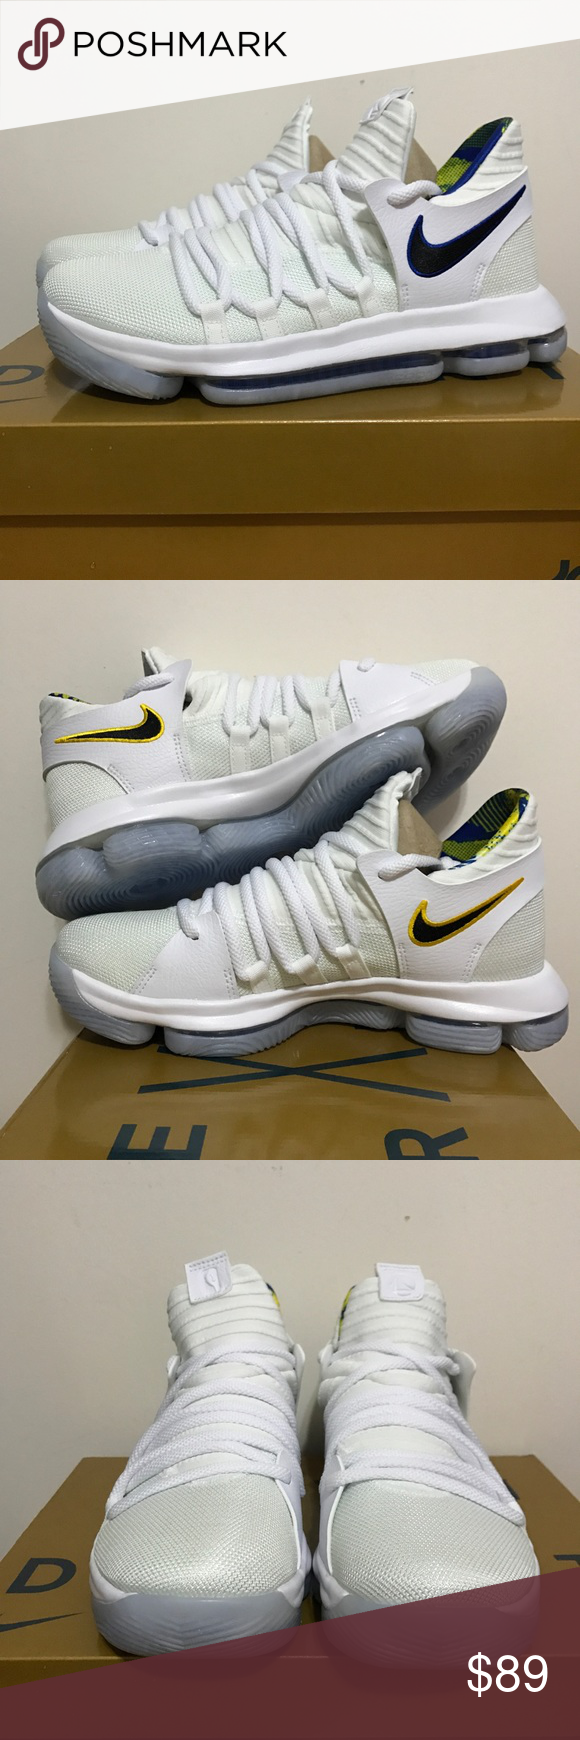 55d941f96bda NEW Nike Zoom KD 10 LMTD GS Basketball Sneakers Brand new with box. No rips